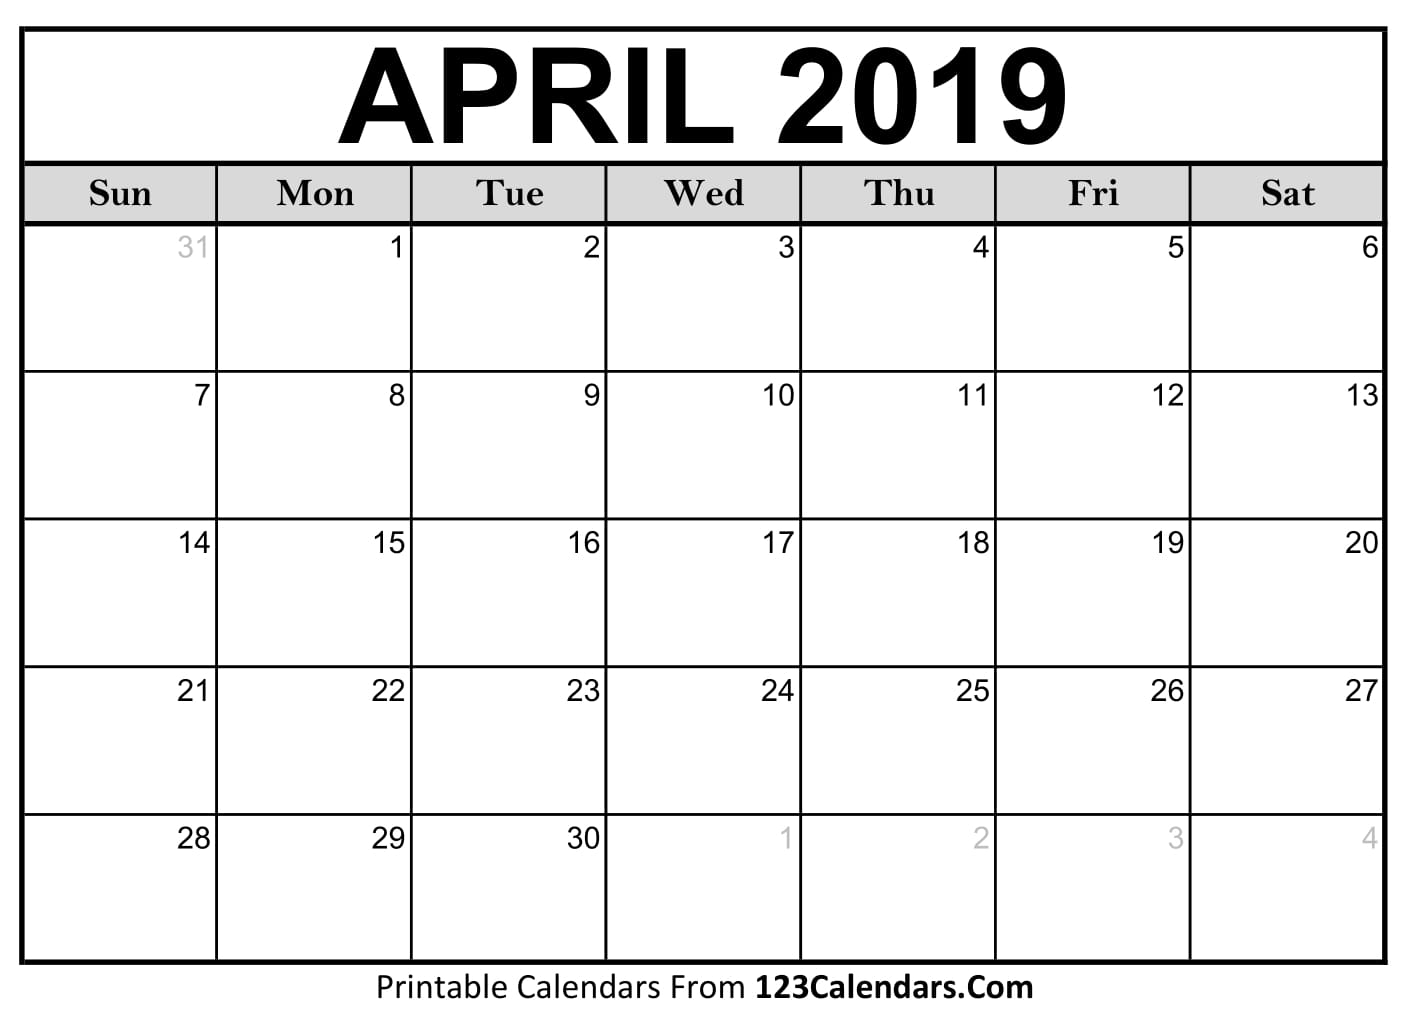 Blank Calendar Template April : Free april calendar printable template source